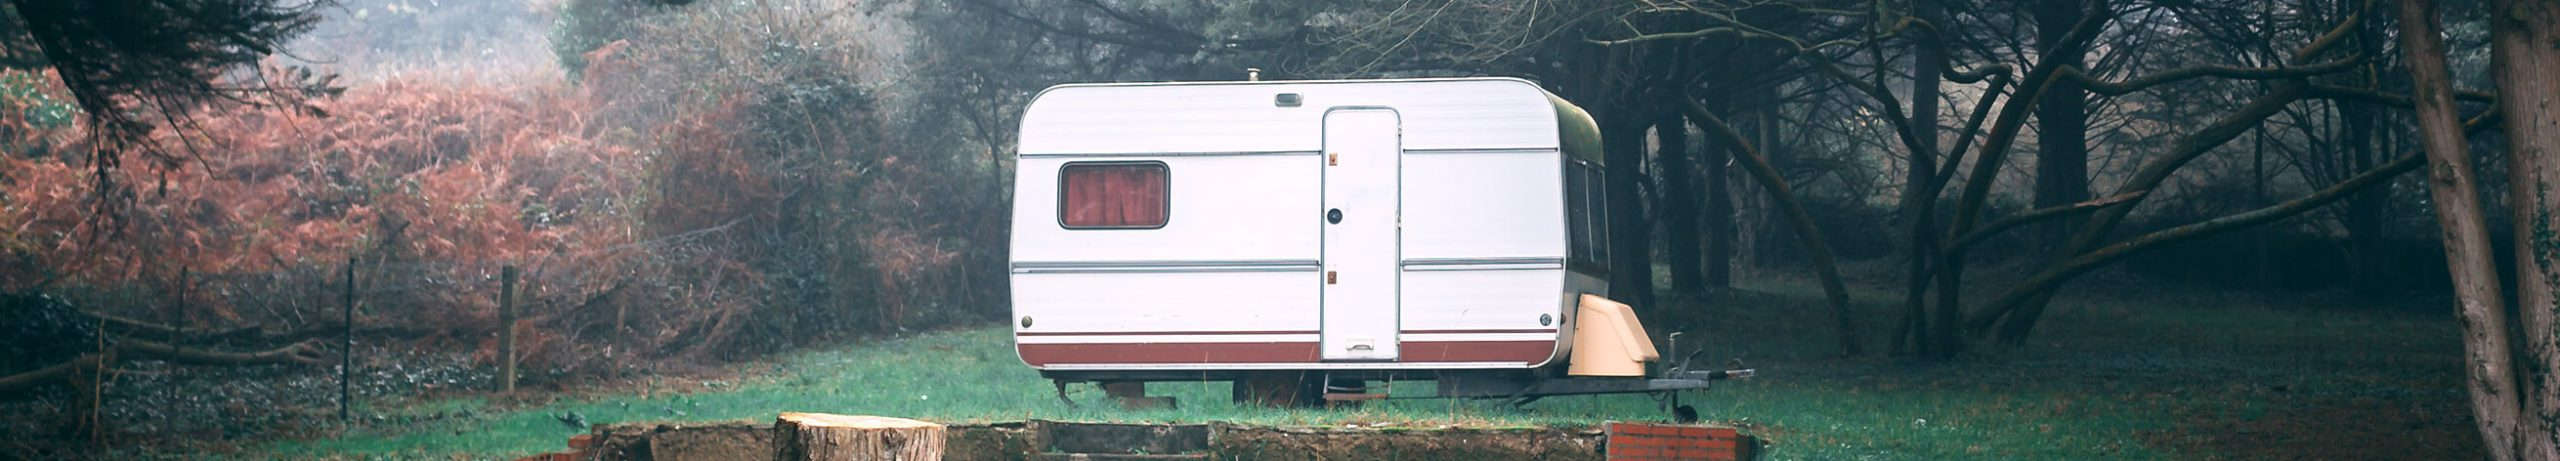 10 Tips for Cutting Your Caravan Insurance Cost